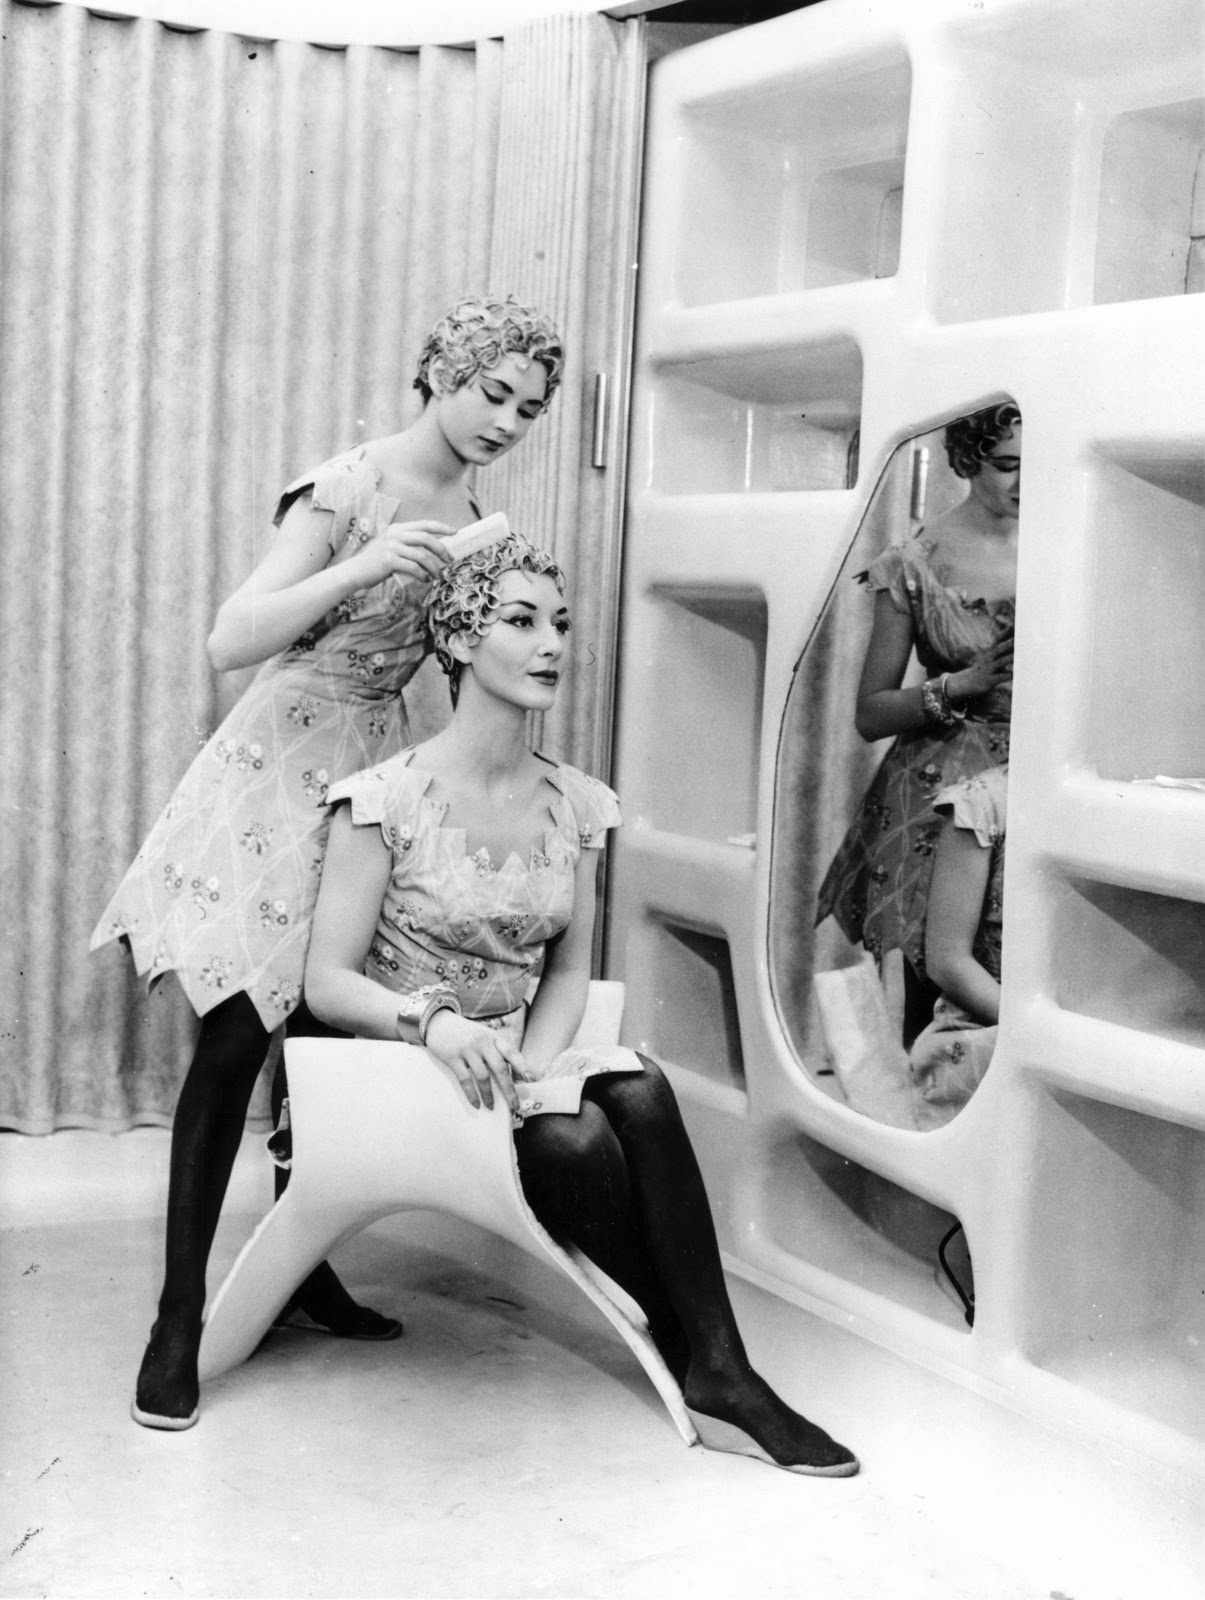 A woman fixing another woman's hair in a dressing room